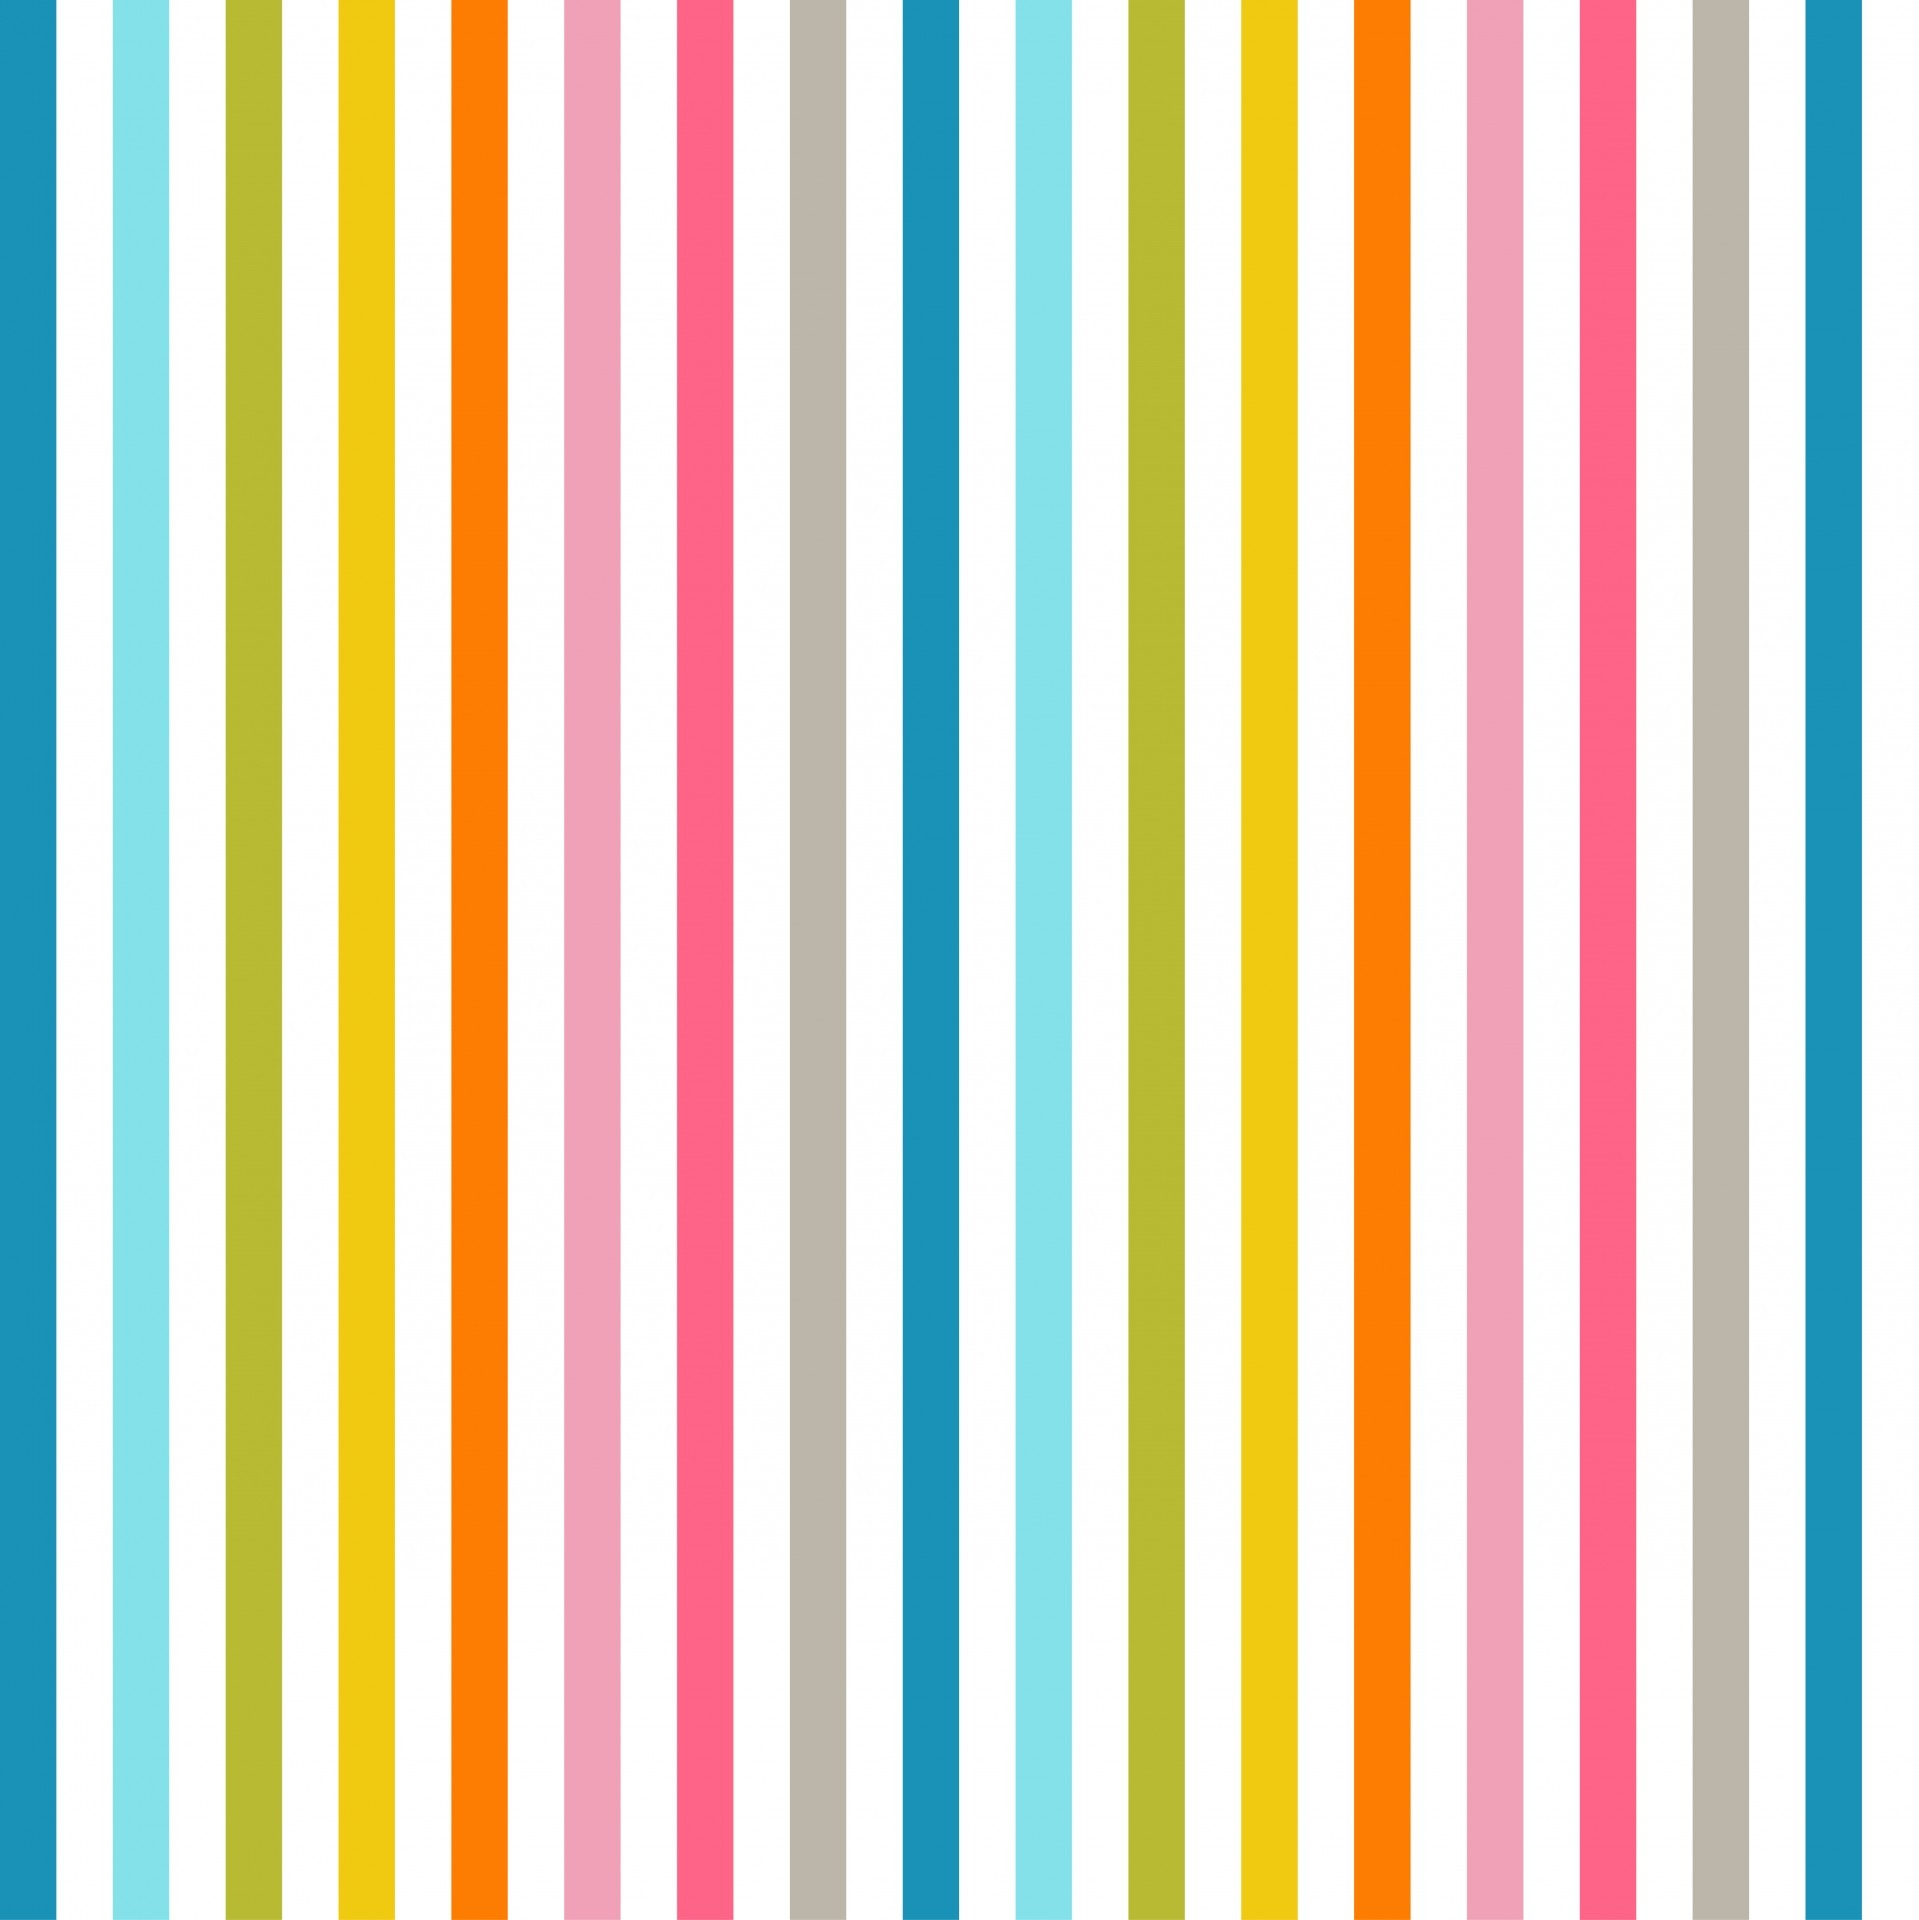 striped background download free stunning wallpapers for desktop